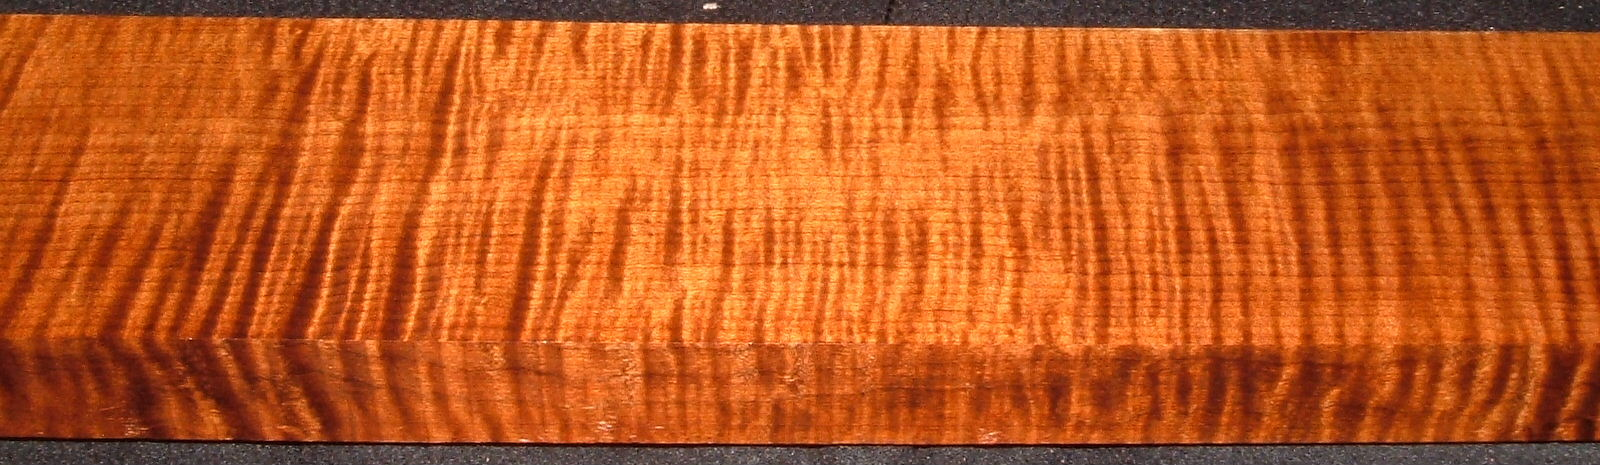 QRM2008-214, 1-3/16x3-5/8x45, Quartersawn Roasted Curly Maple